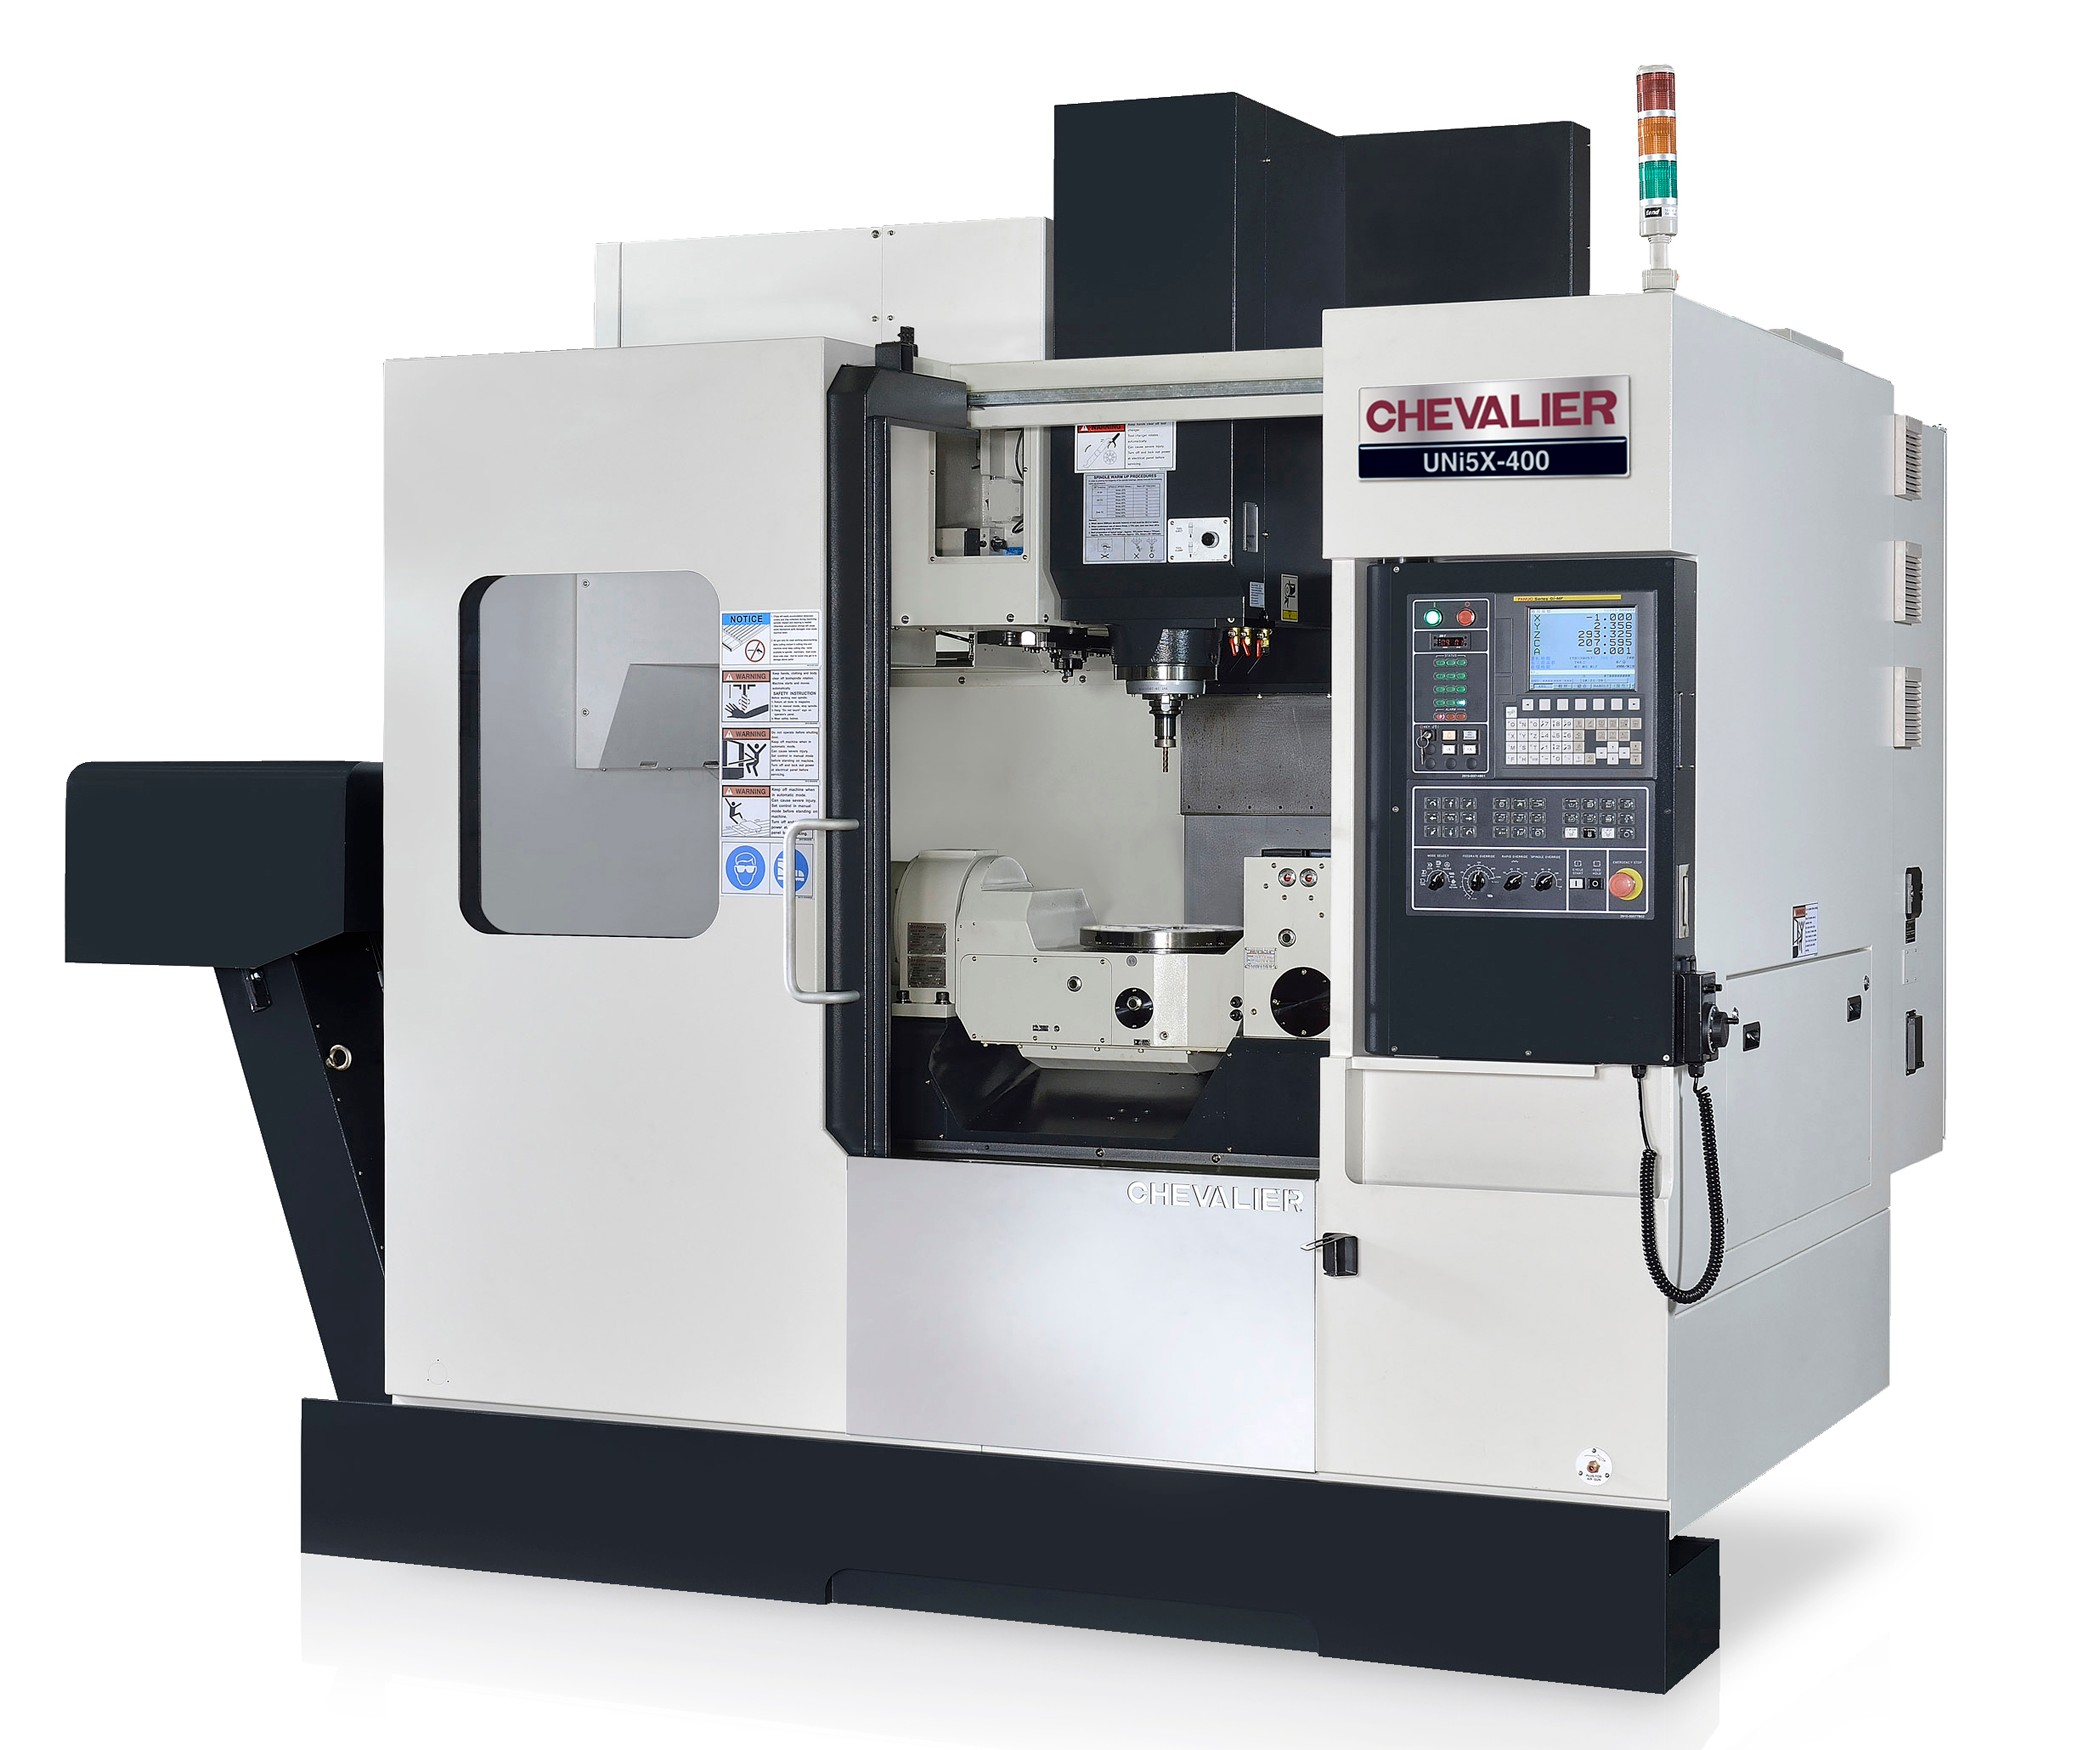 Chevalier Machinery's UNi5X-400 five-axis VMC